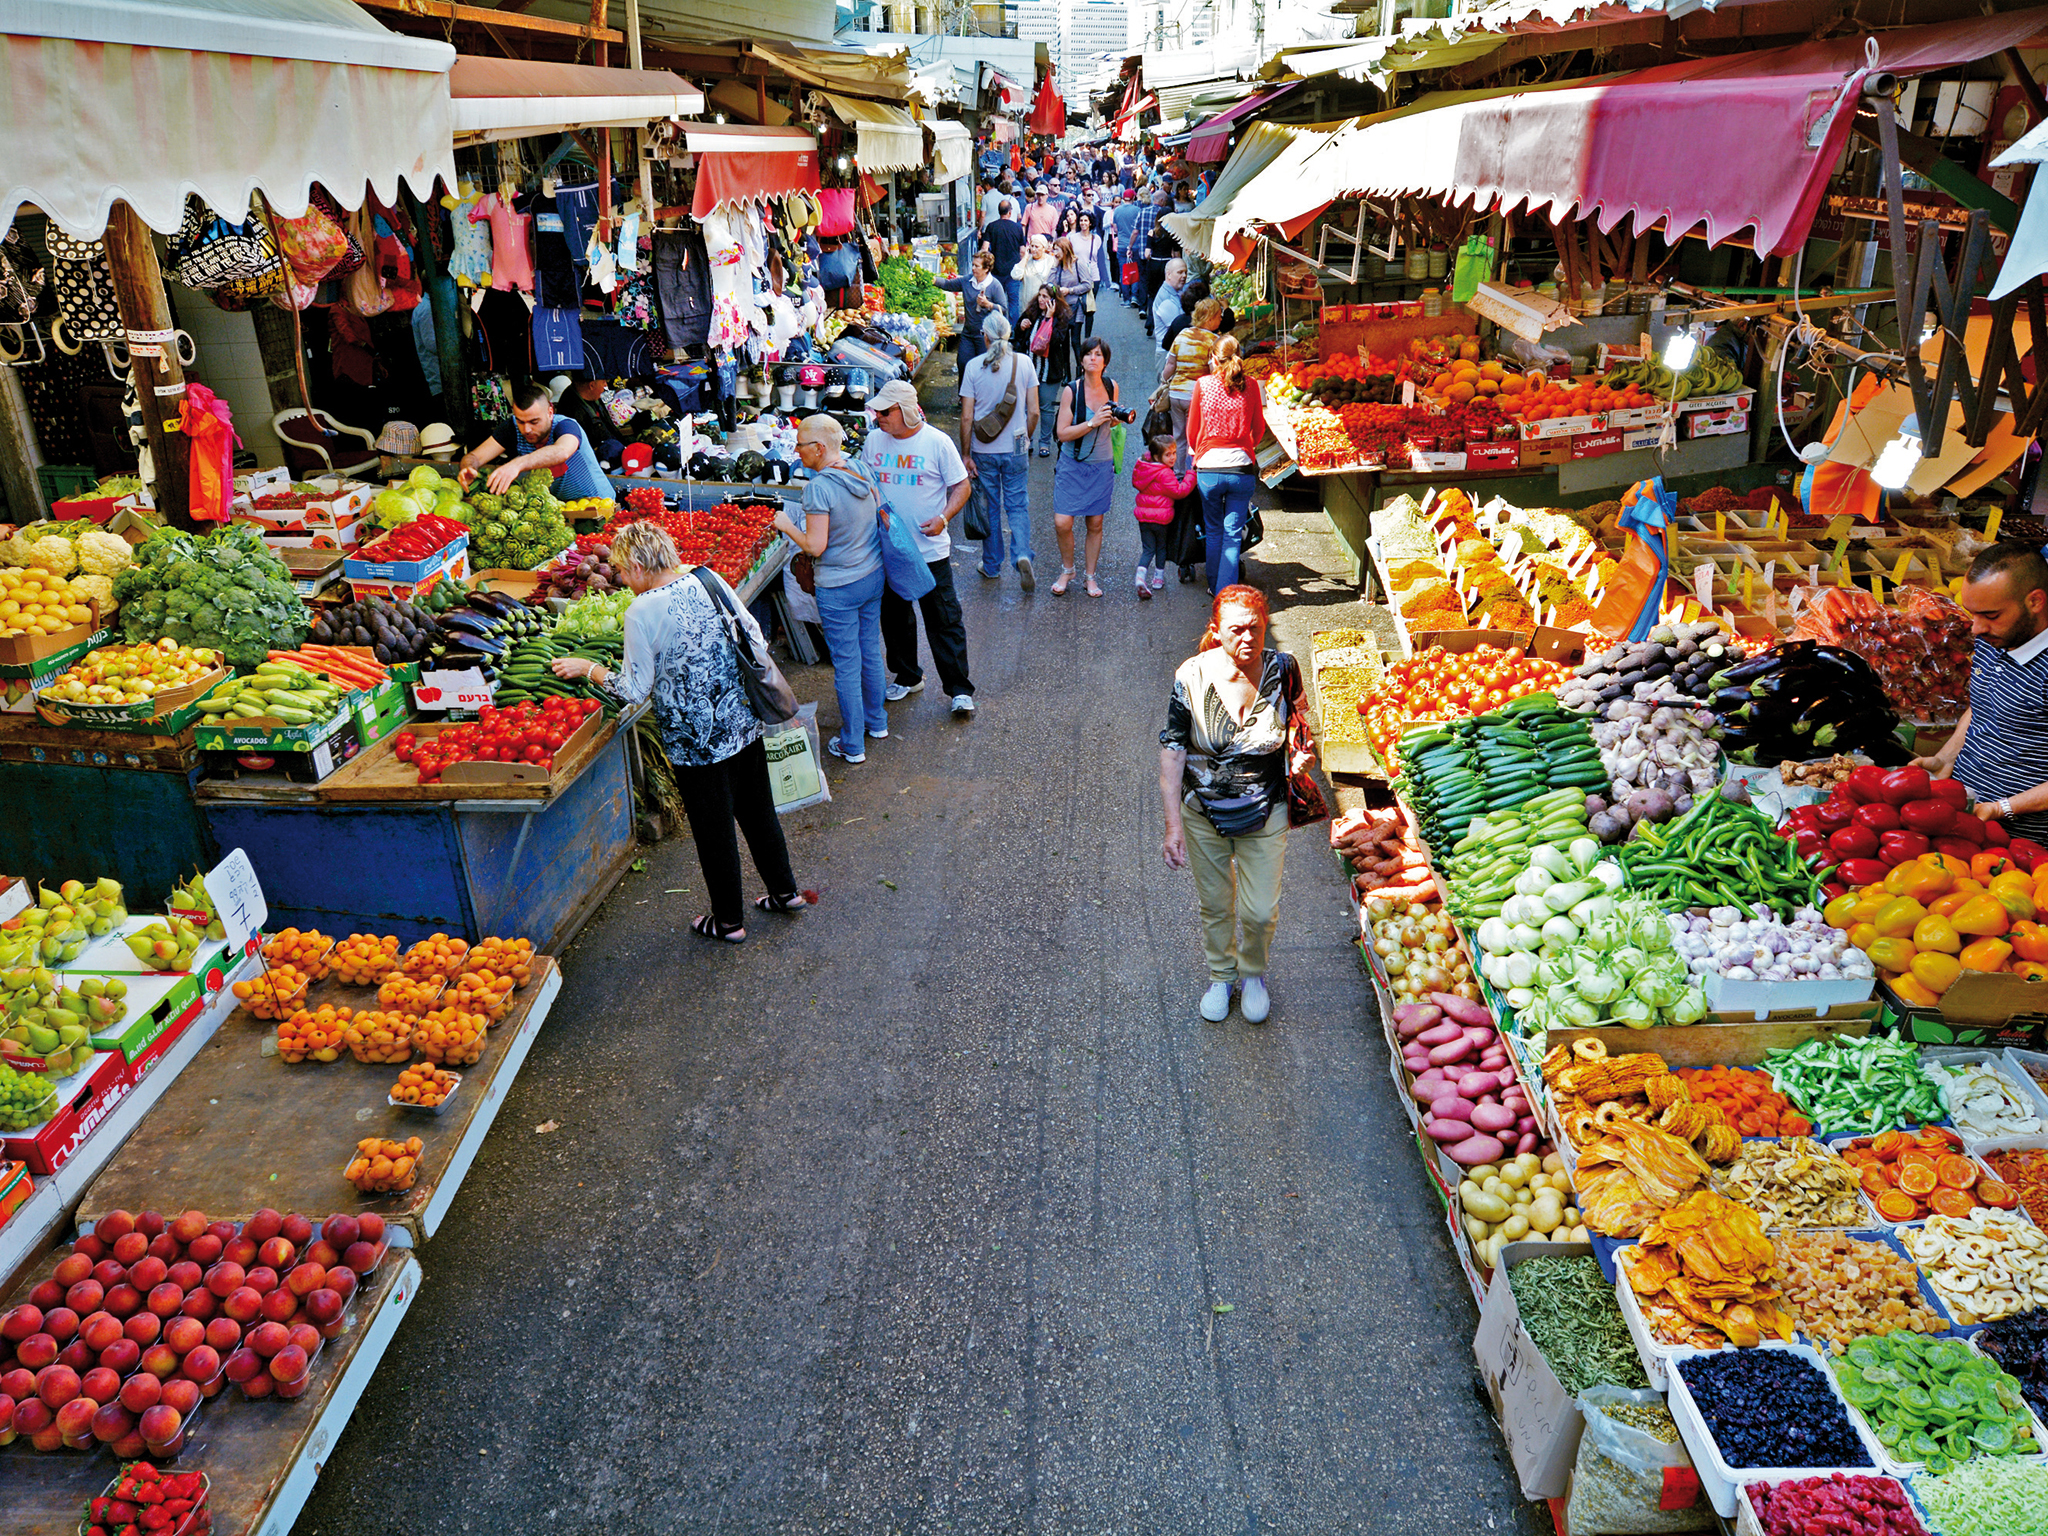 The Carmel Market